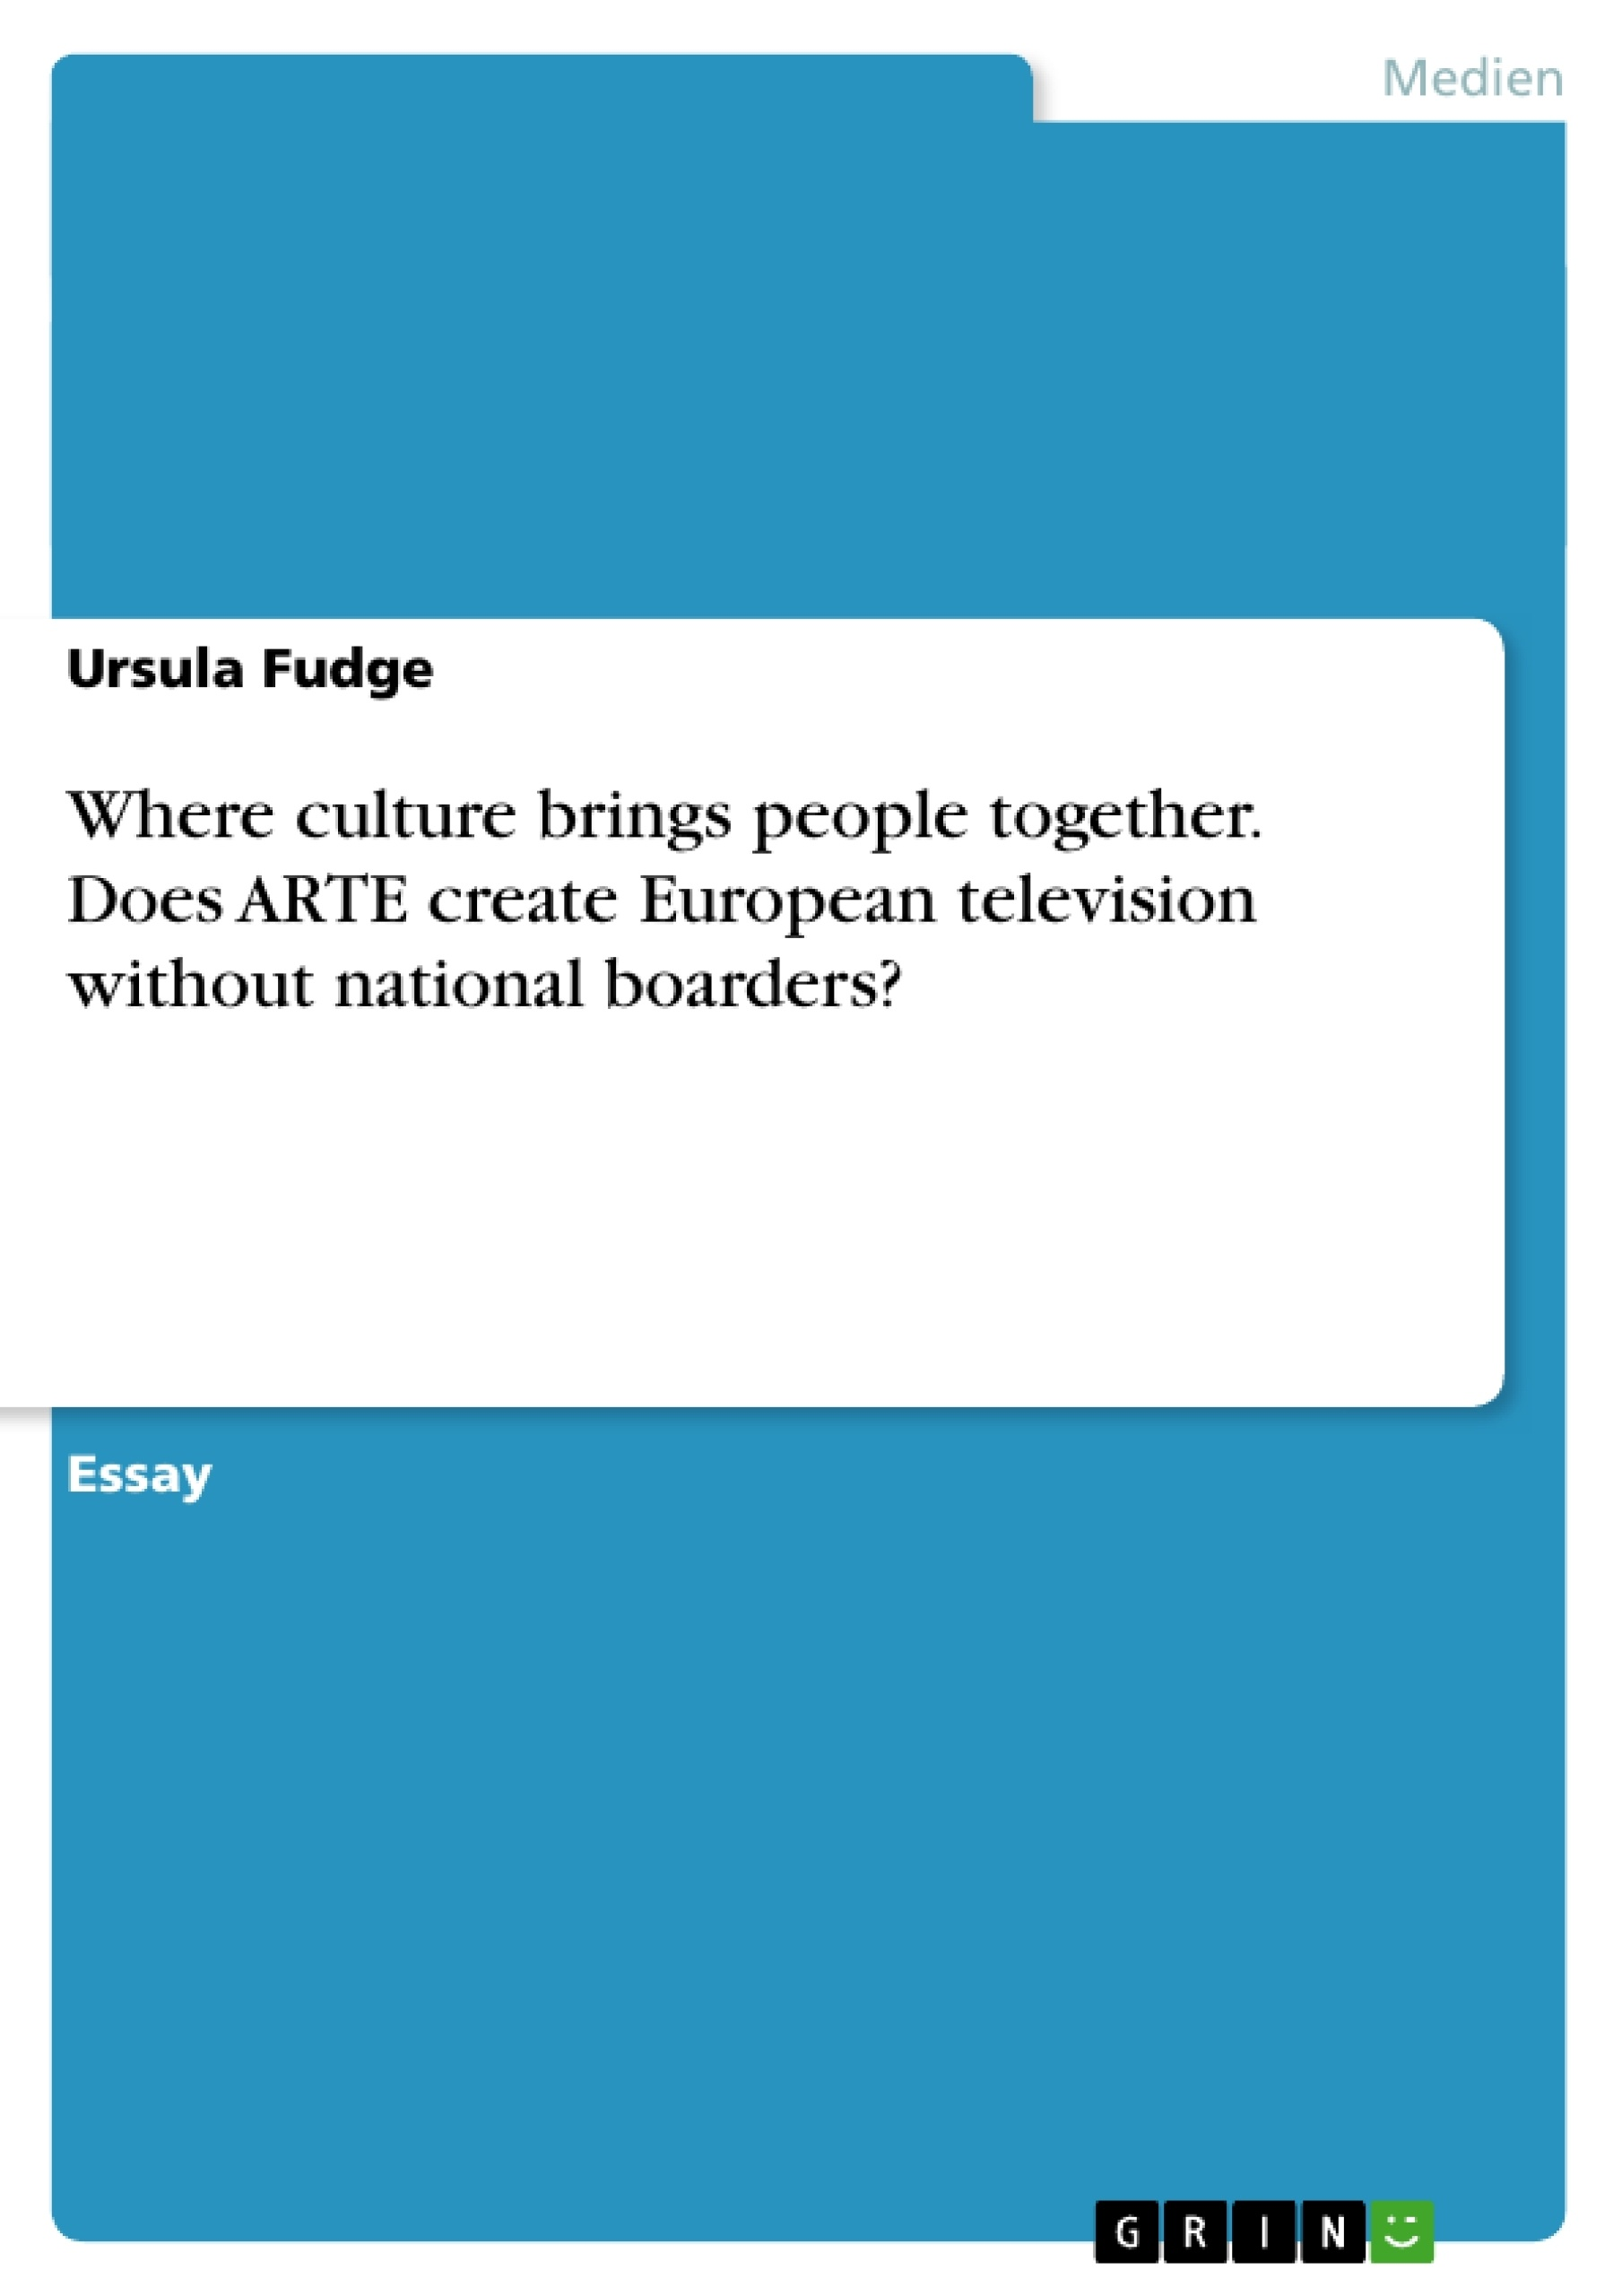 Titel: Where culture brings people together.  Does ARTE create European television without national boarders?